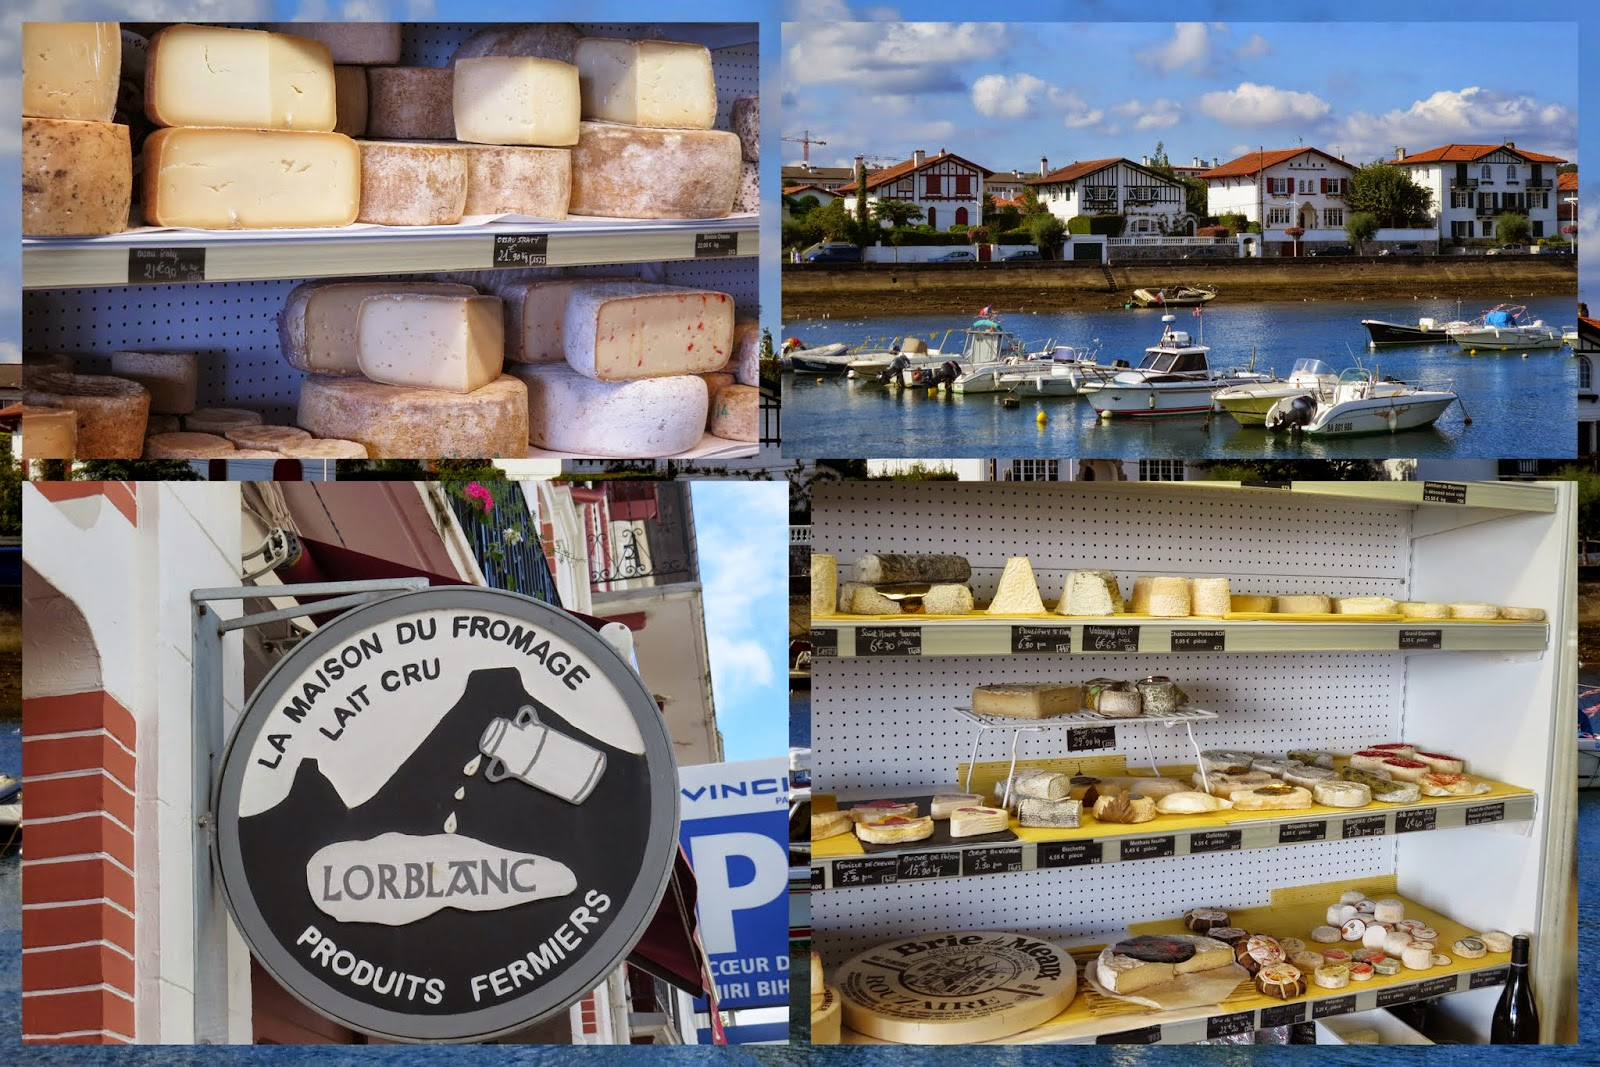 A Weekend in French Basque Country - La Maison du Fromage - St. Jean de Luz